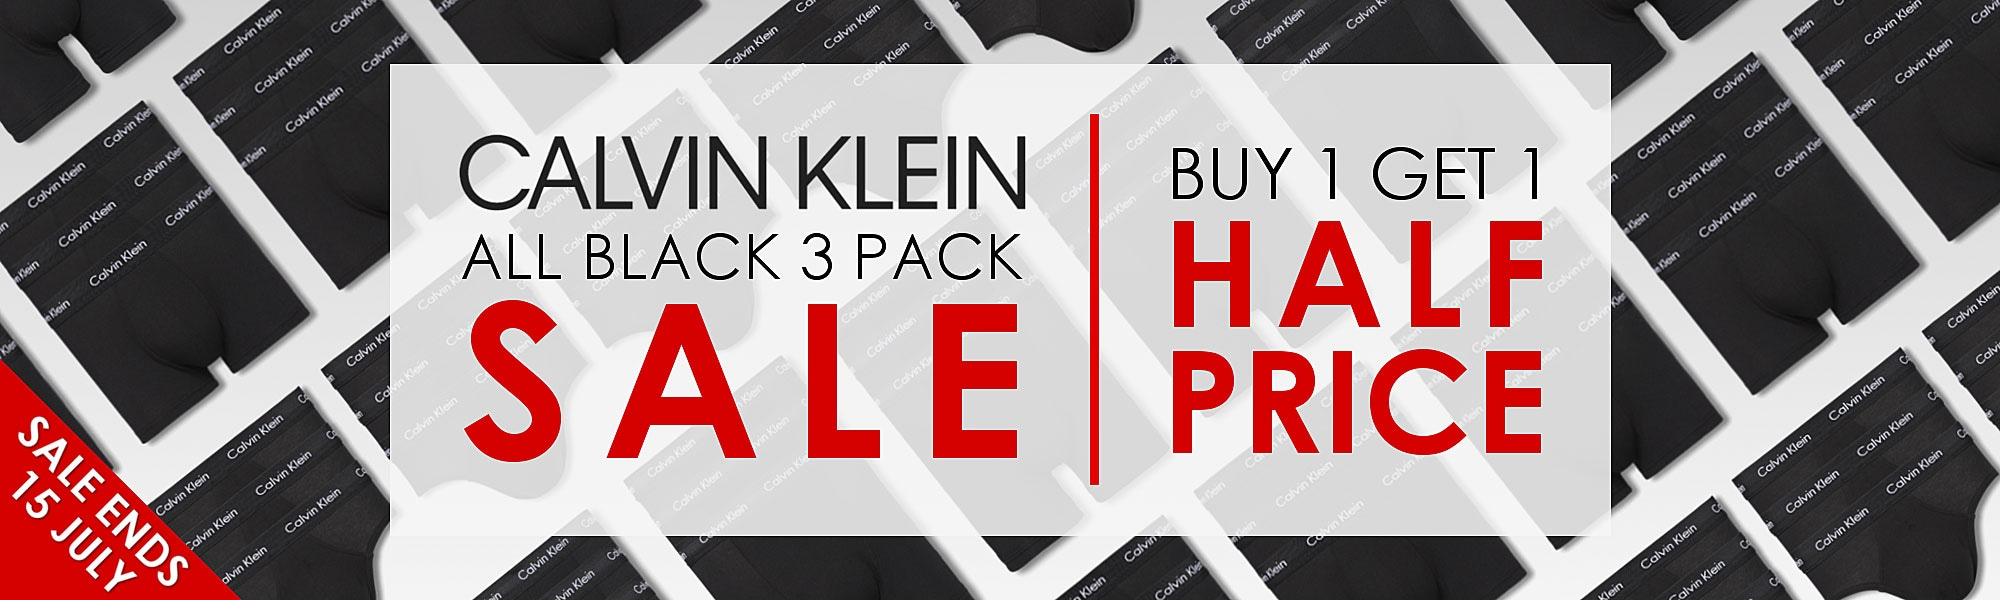 Calvin Klein All Black Sale - Buy 1 Get 1 Half Price